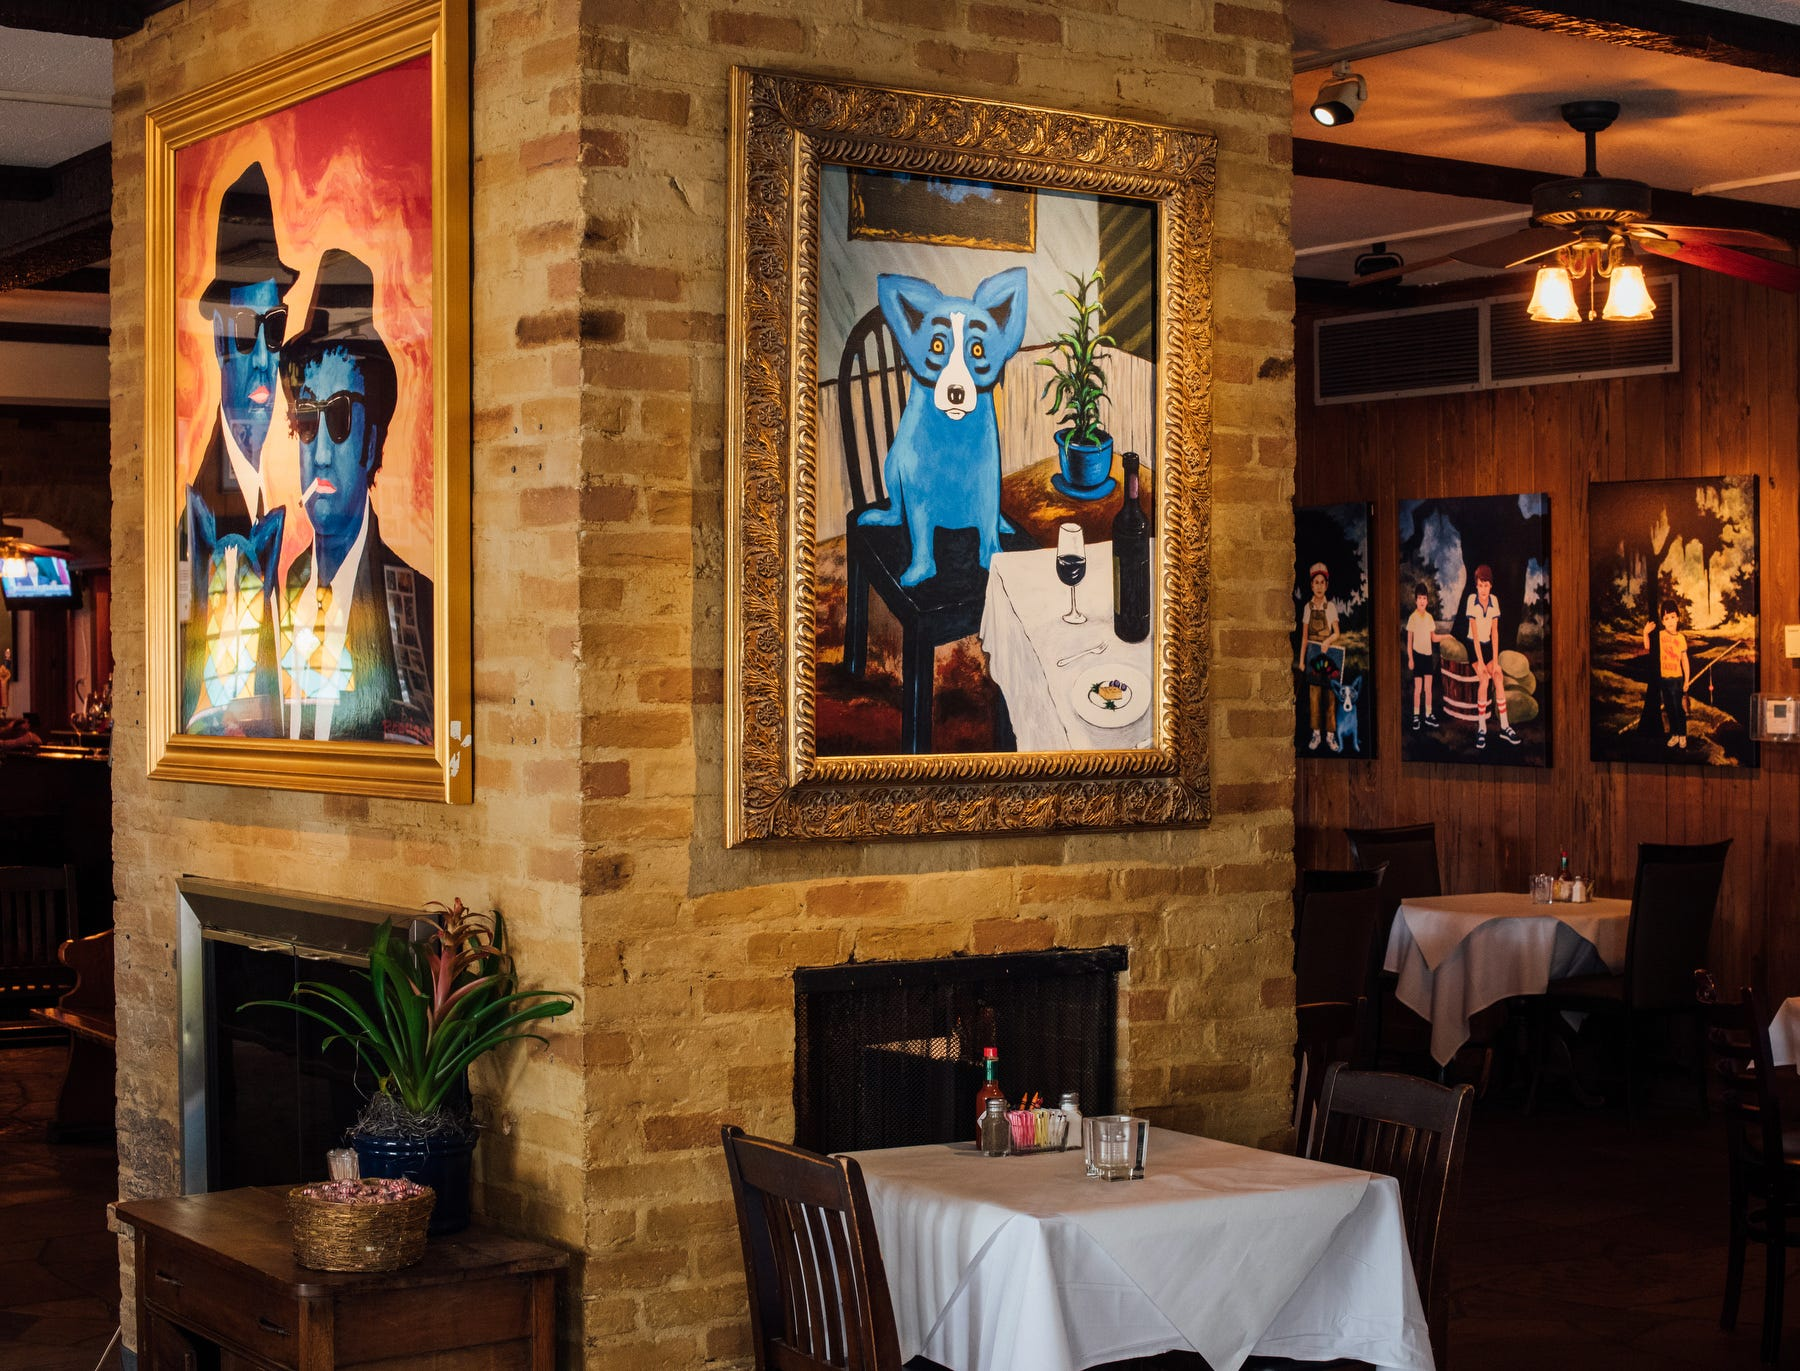 Blue Dog Cafe will reopen Jan. 19 after undergoing renovations to the kitchen.